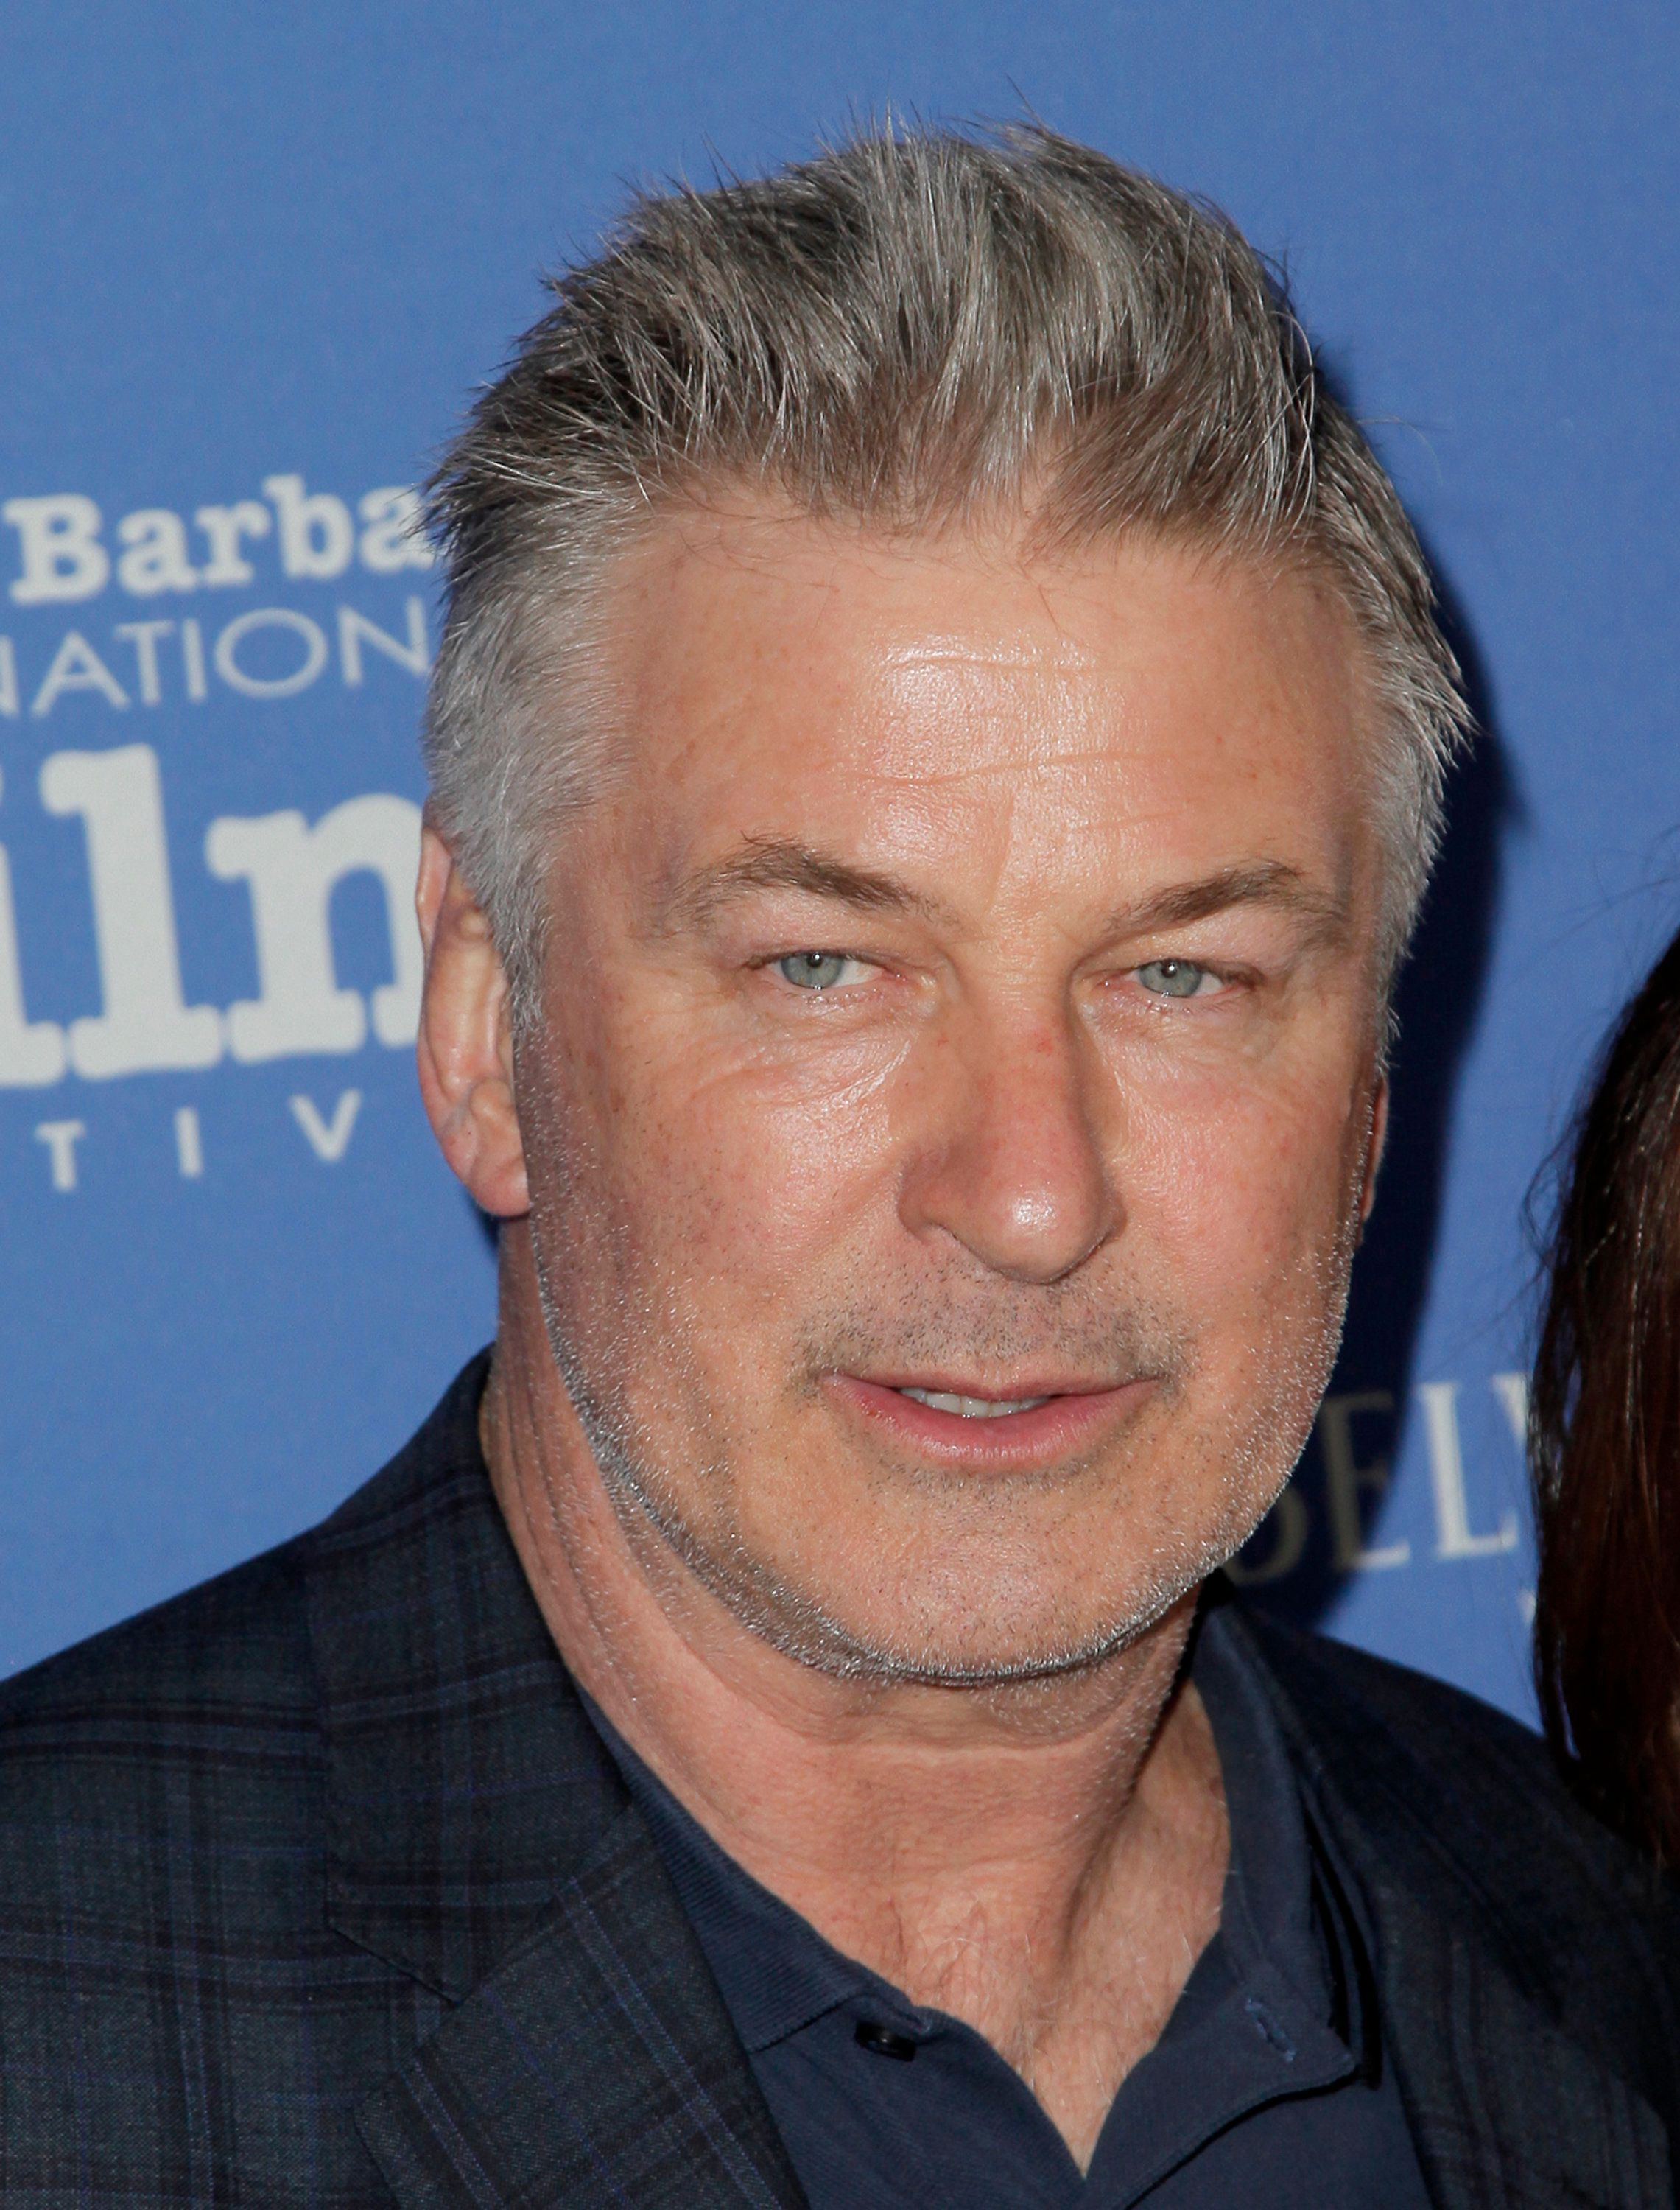 SANTA BARBARA, CA - JANUARY 31:  Alec Baldwin attends the 33rd annual Santa Barbara International Film Festival opening night premiere of 'The Public' at Arlington Theatre on January 31, 2018 in Santa Barbara, California.  (Photo by Tibrina Hobson/Getty Images)